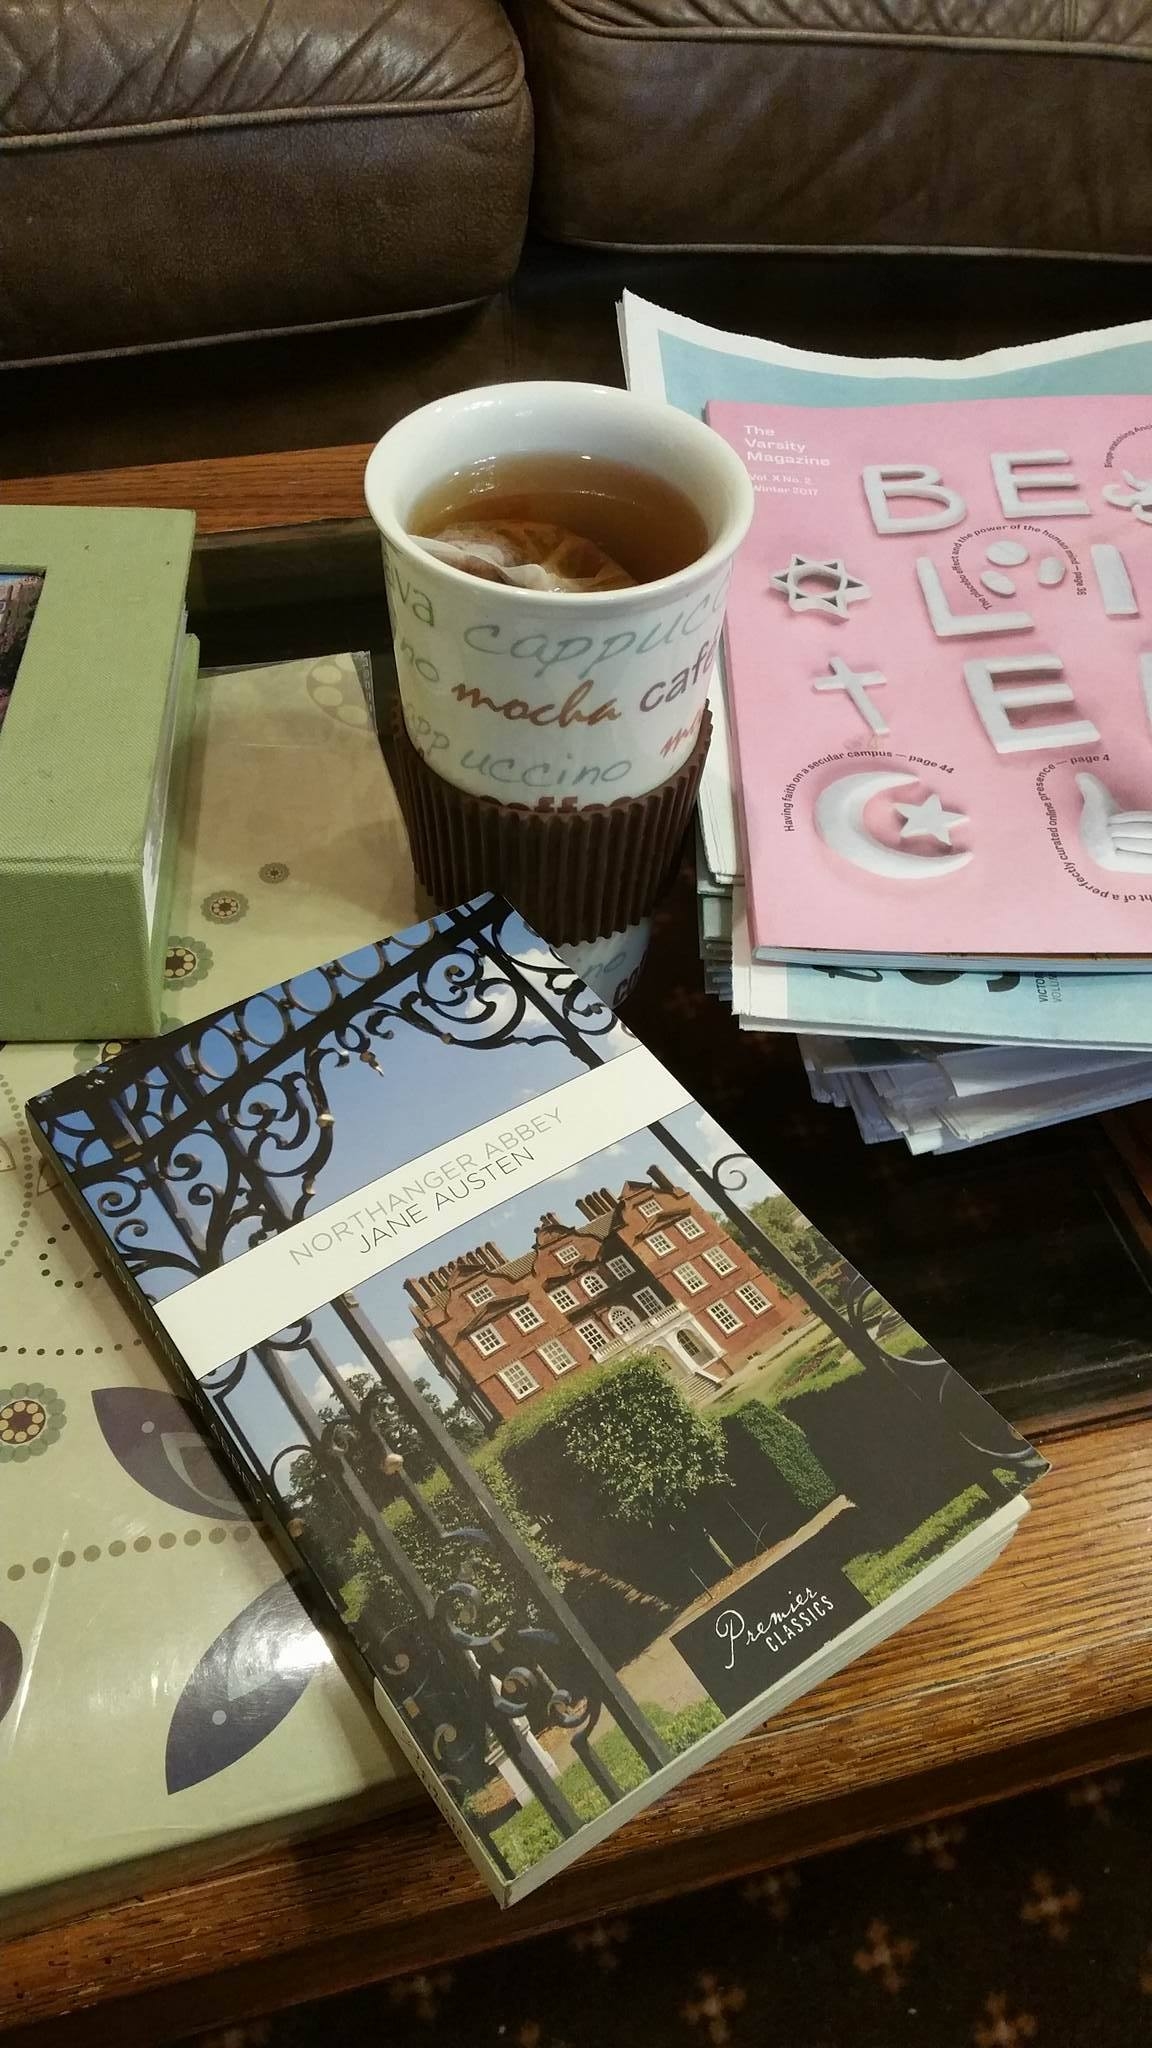 Northanger Abbey book on coffee table